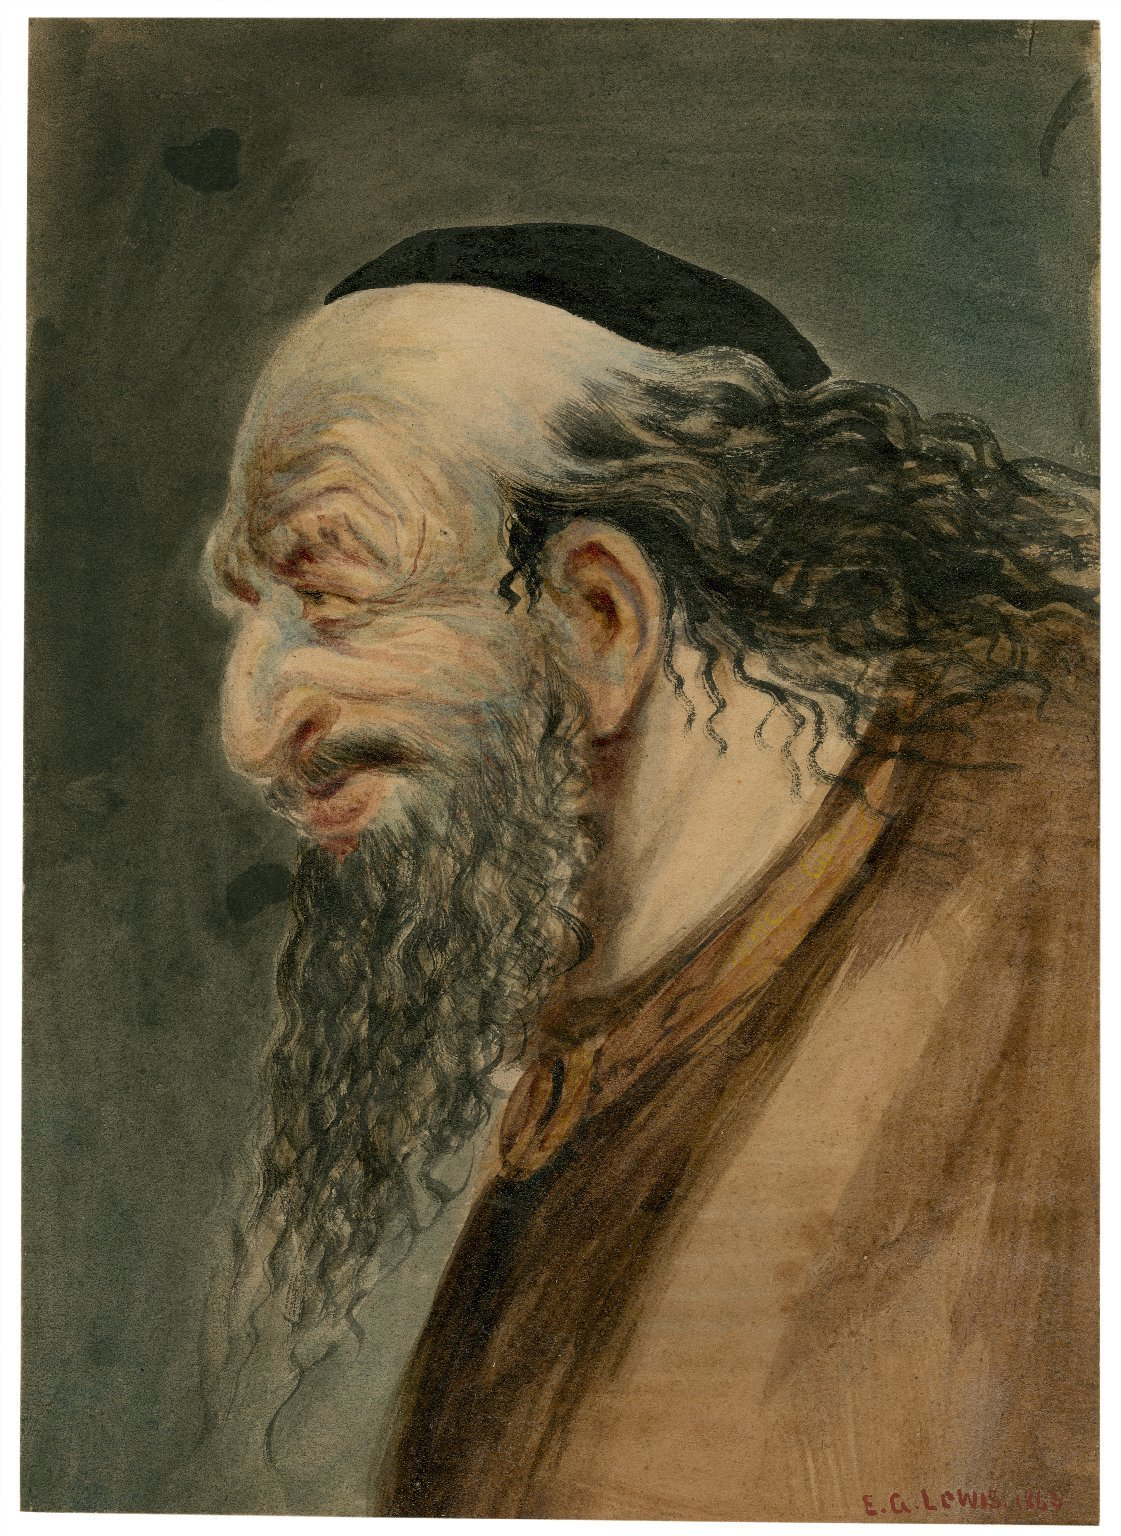 tragedy shylock critical essay shakespeare s merchant venice Shylock is the antagonist and a tragic character in william shakespeare's the merchant of venice a jewish merchant living in a christian city, he comes across as greedy, jealous and vengeful.